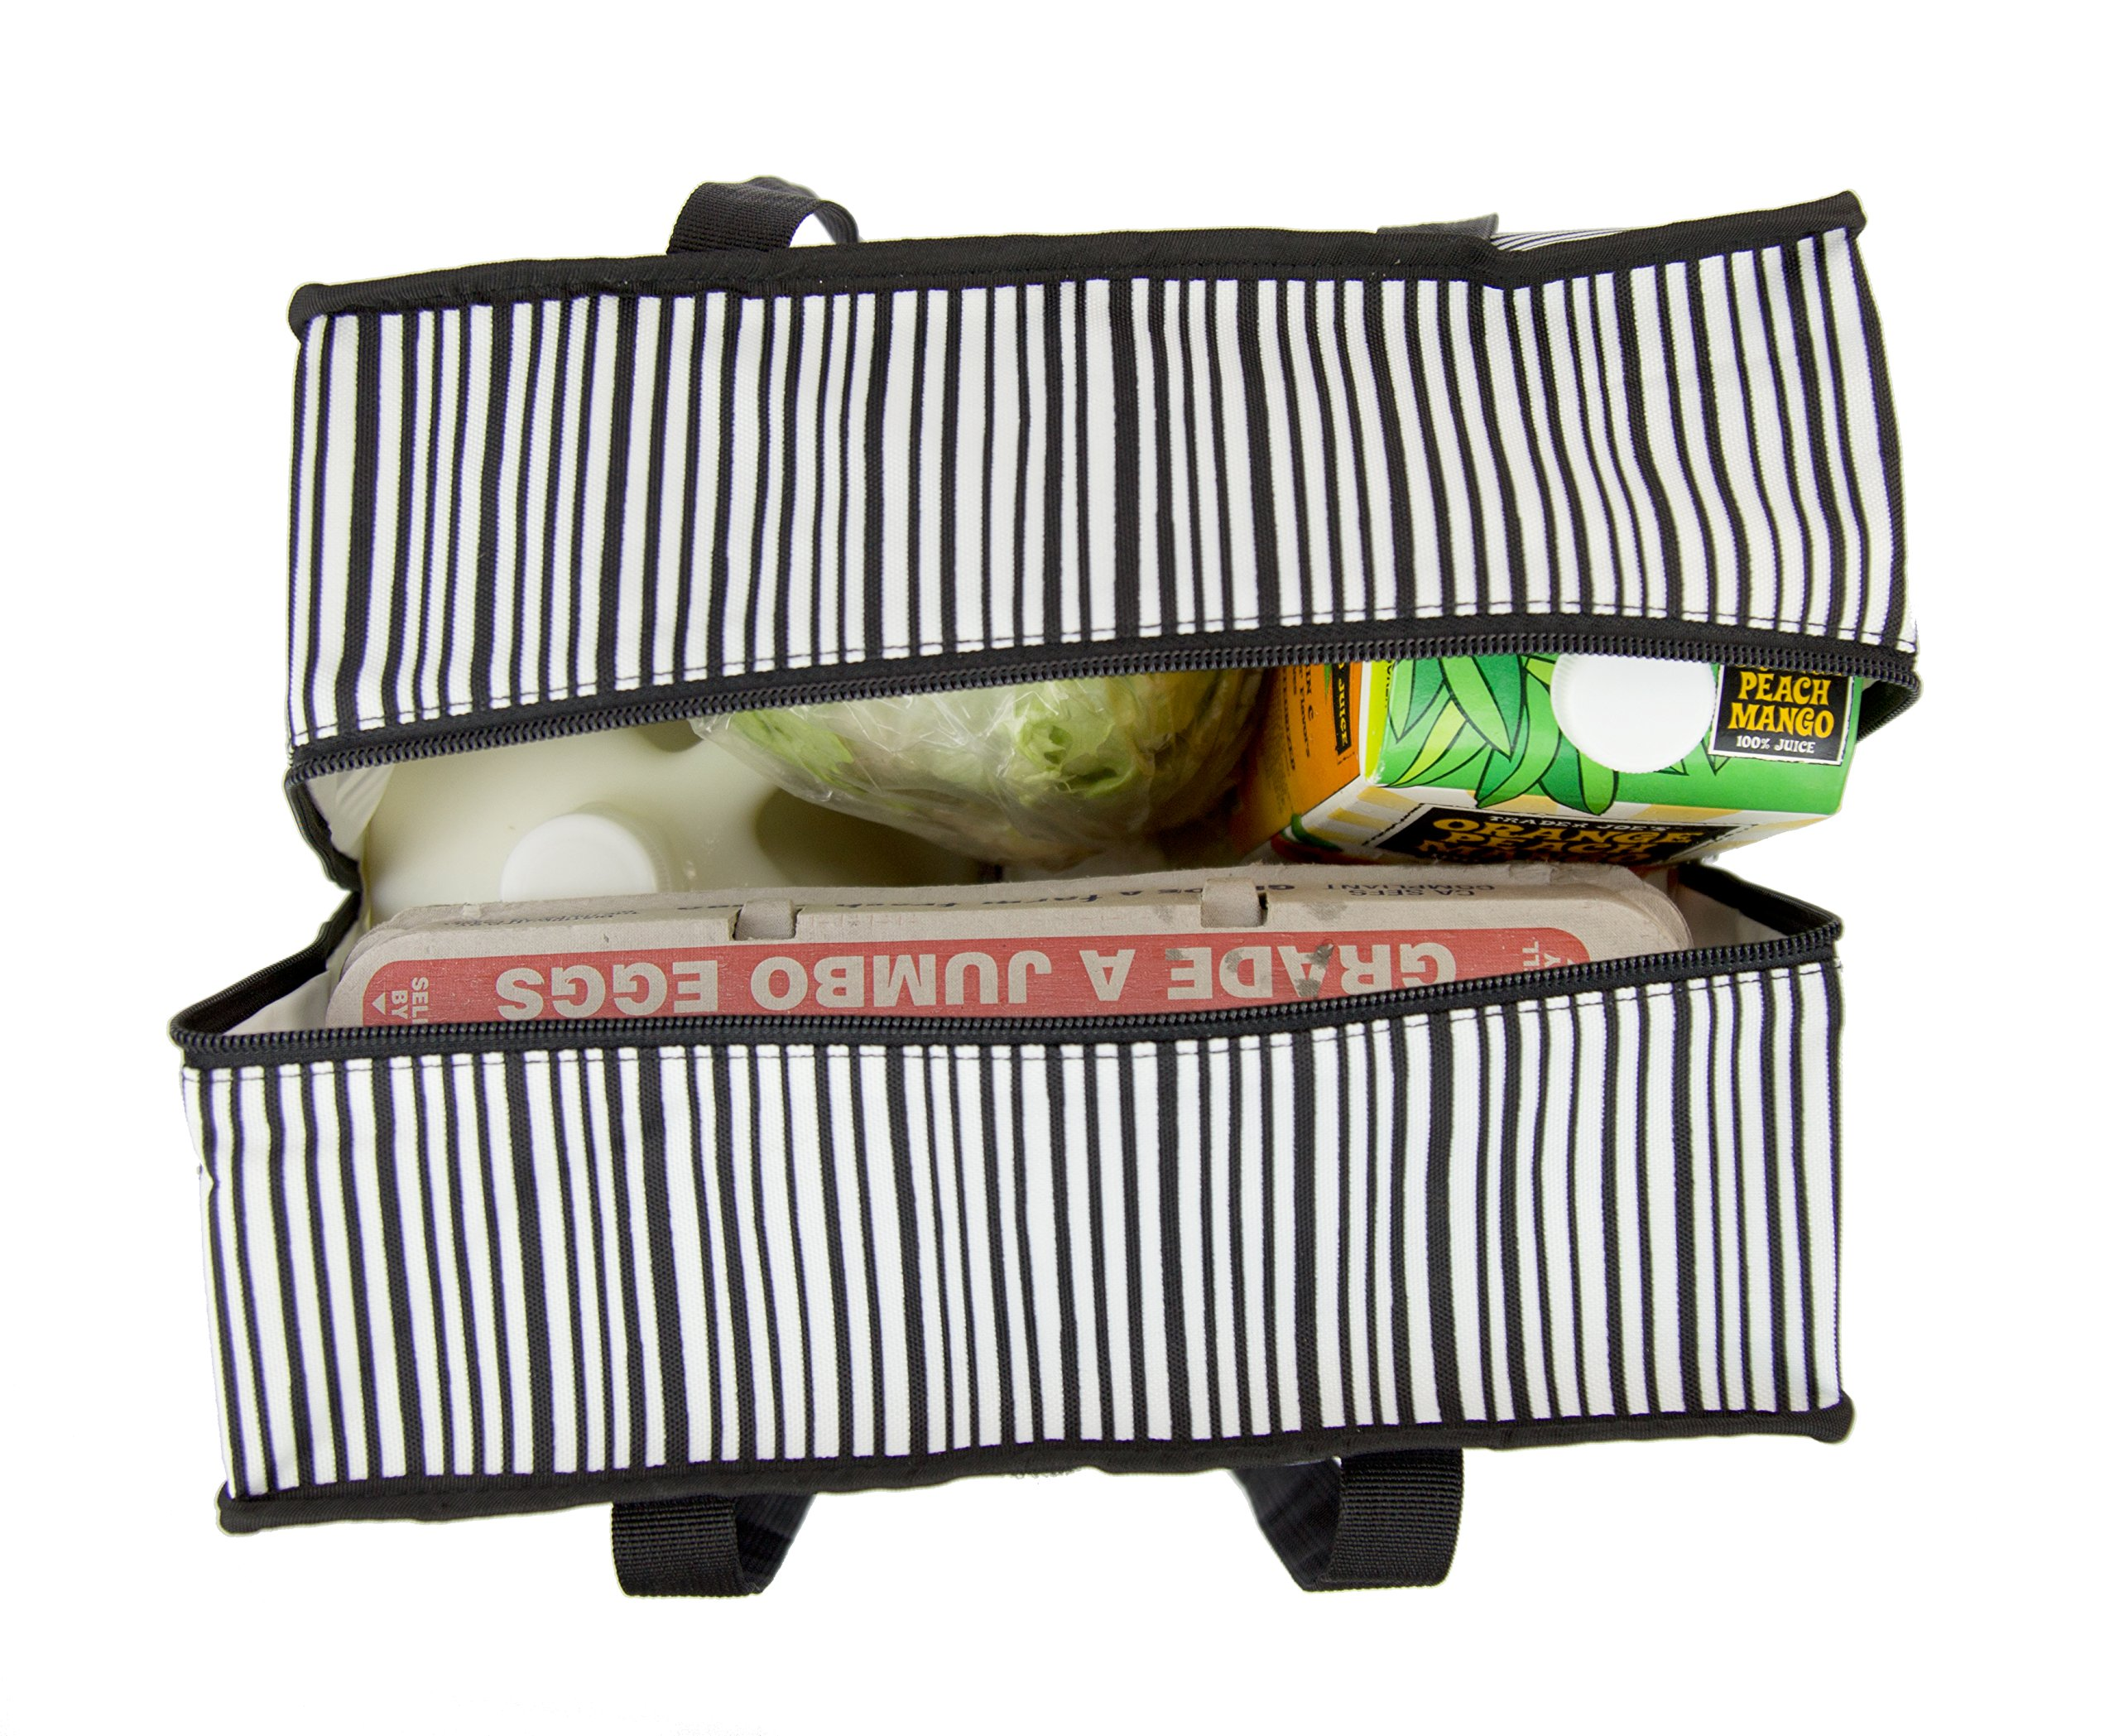 PackIt Freezable Grocery Shopping Bag with Zip Closure, Wobbly Stripes by PackIt (Image #6)